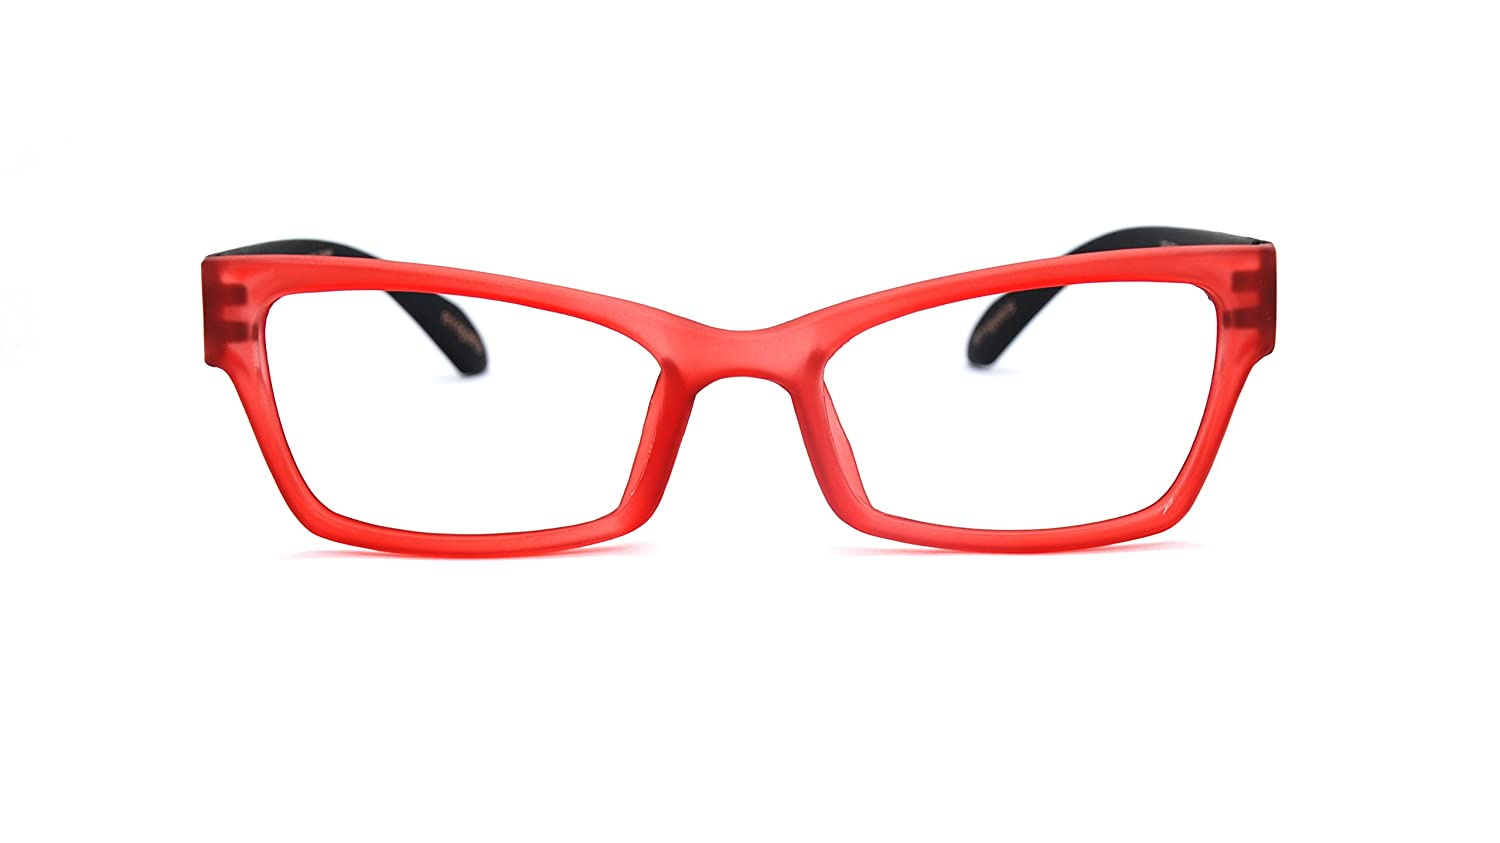 a808c3a65e Amazon.com  Eyejets Venice Cateye Designer Reading Glasses (RED SOFT TOUCH  FRAME  BLACK SOFT TOUCH TEMPLES